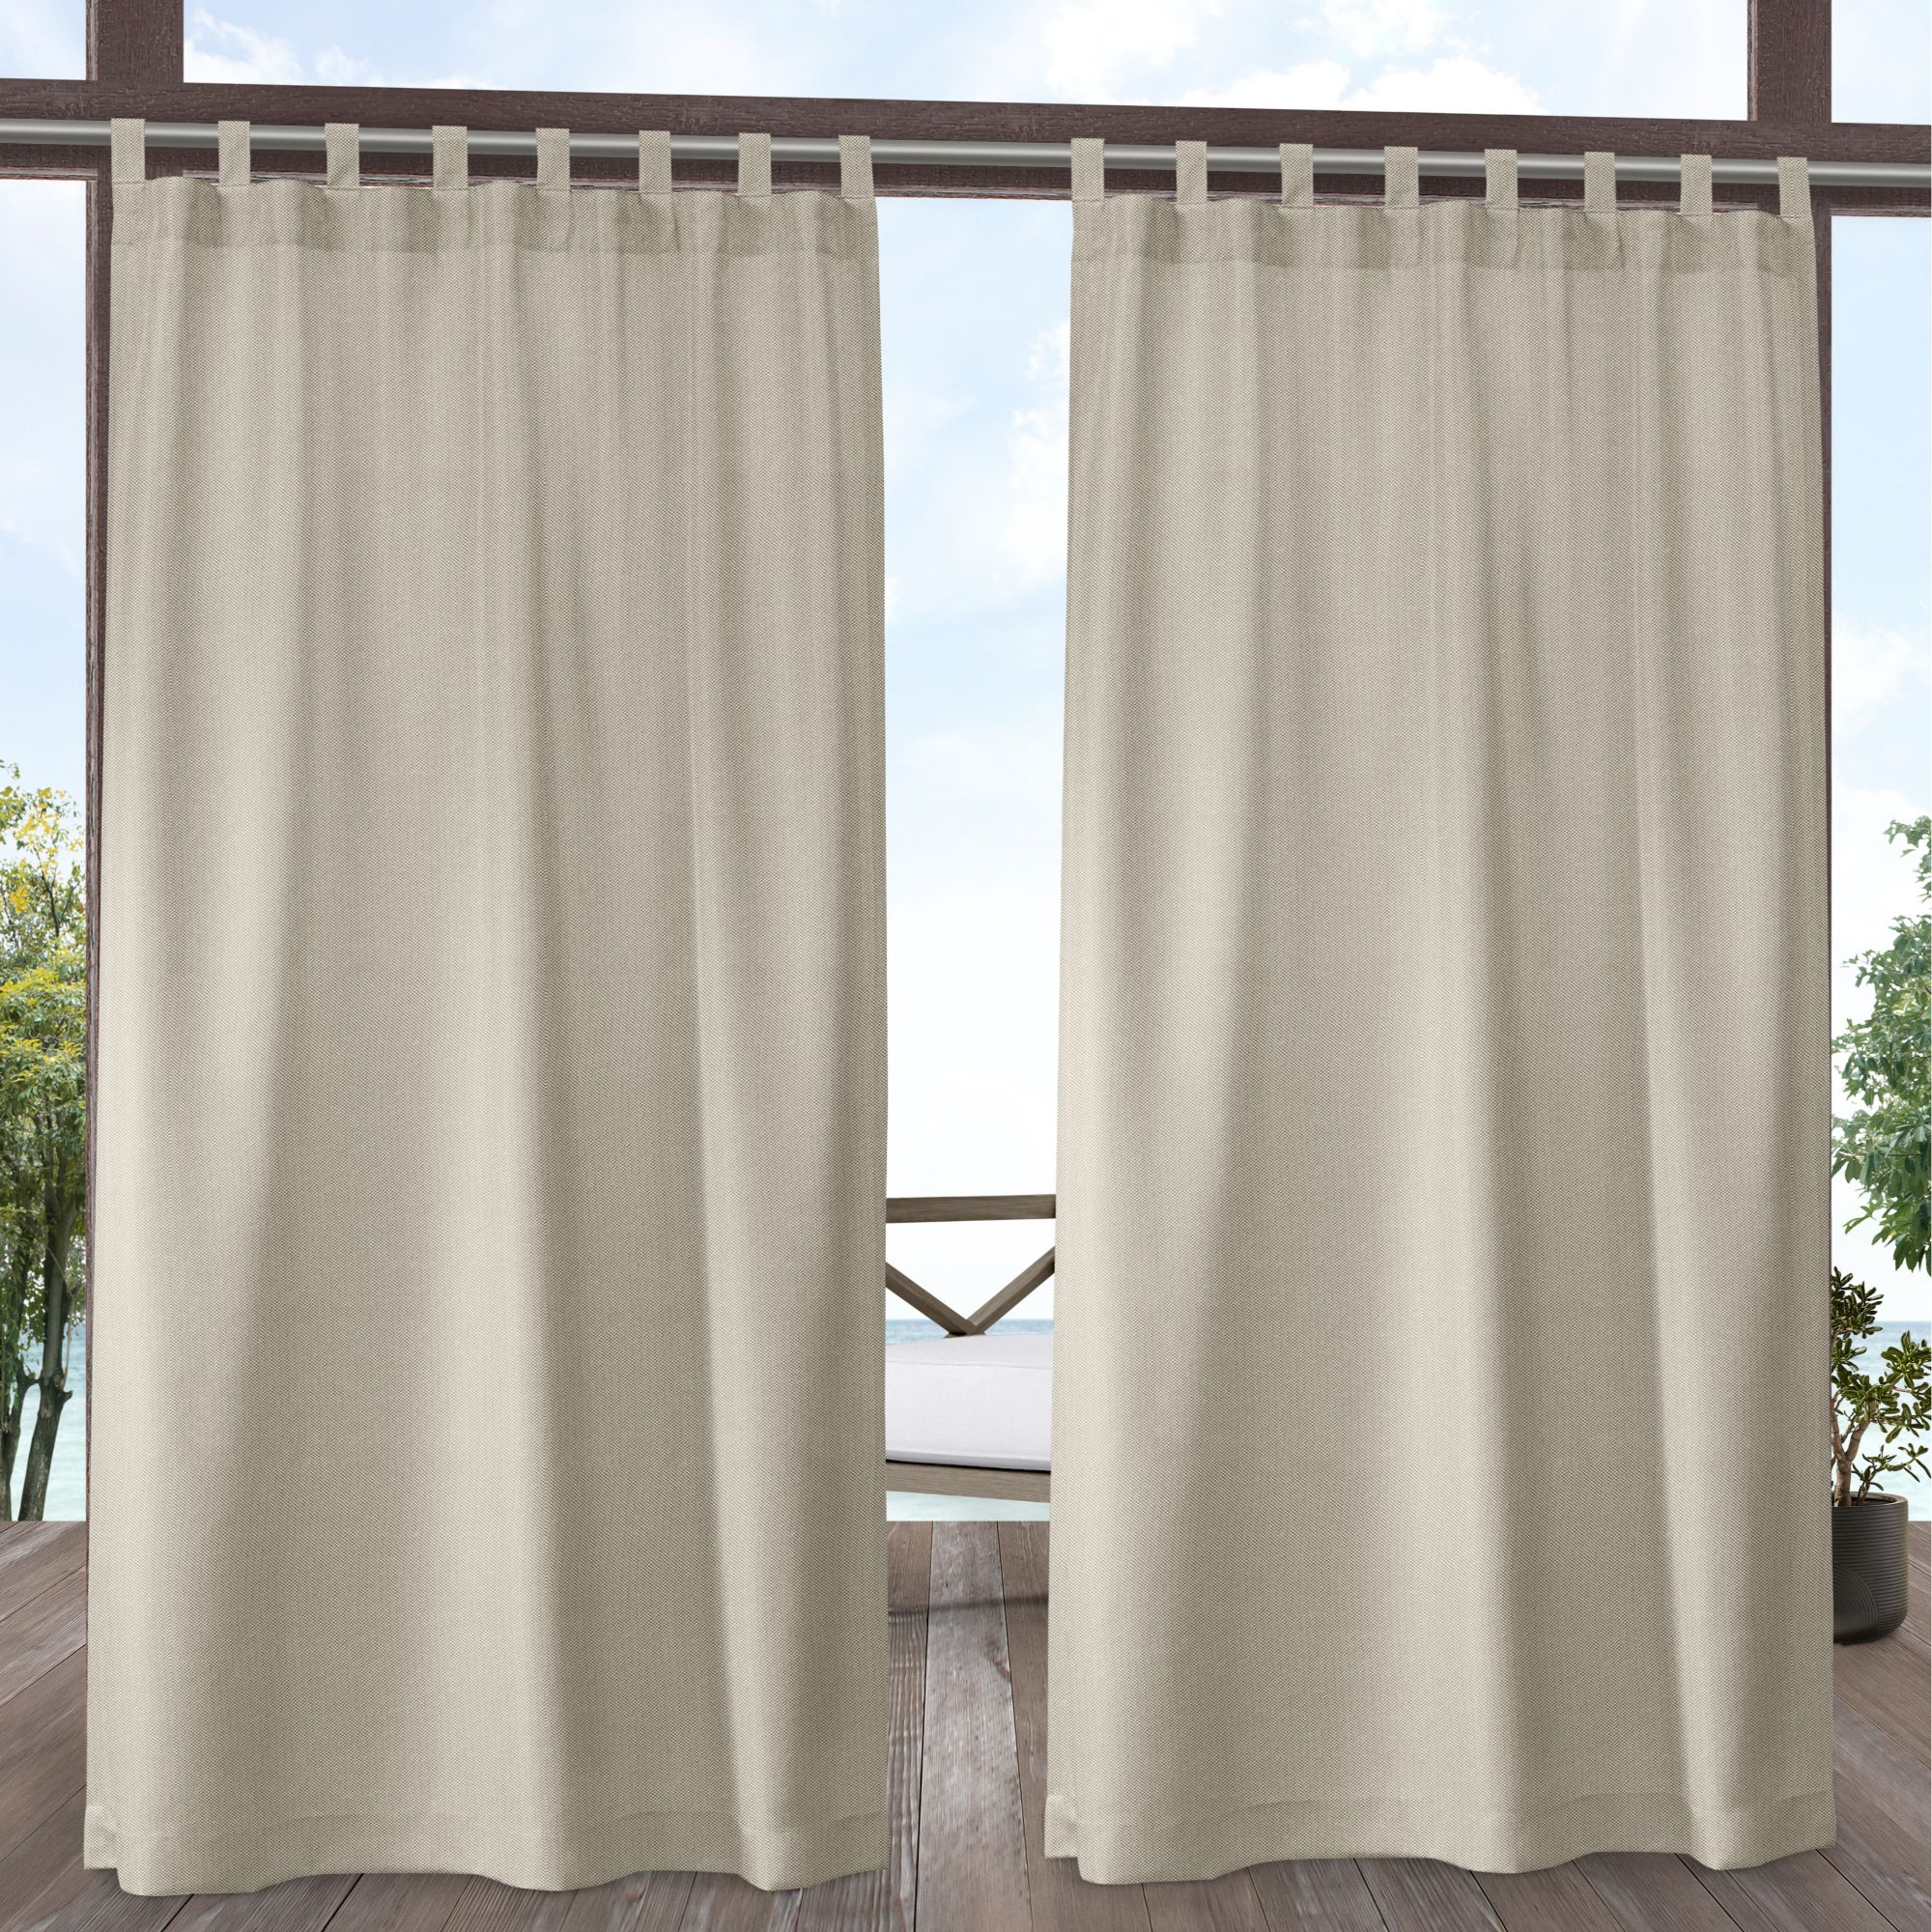 Exclusive Home Curtains Biscayne Indoor/Outdoor Two Tone